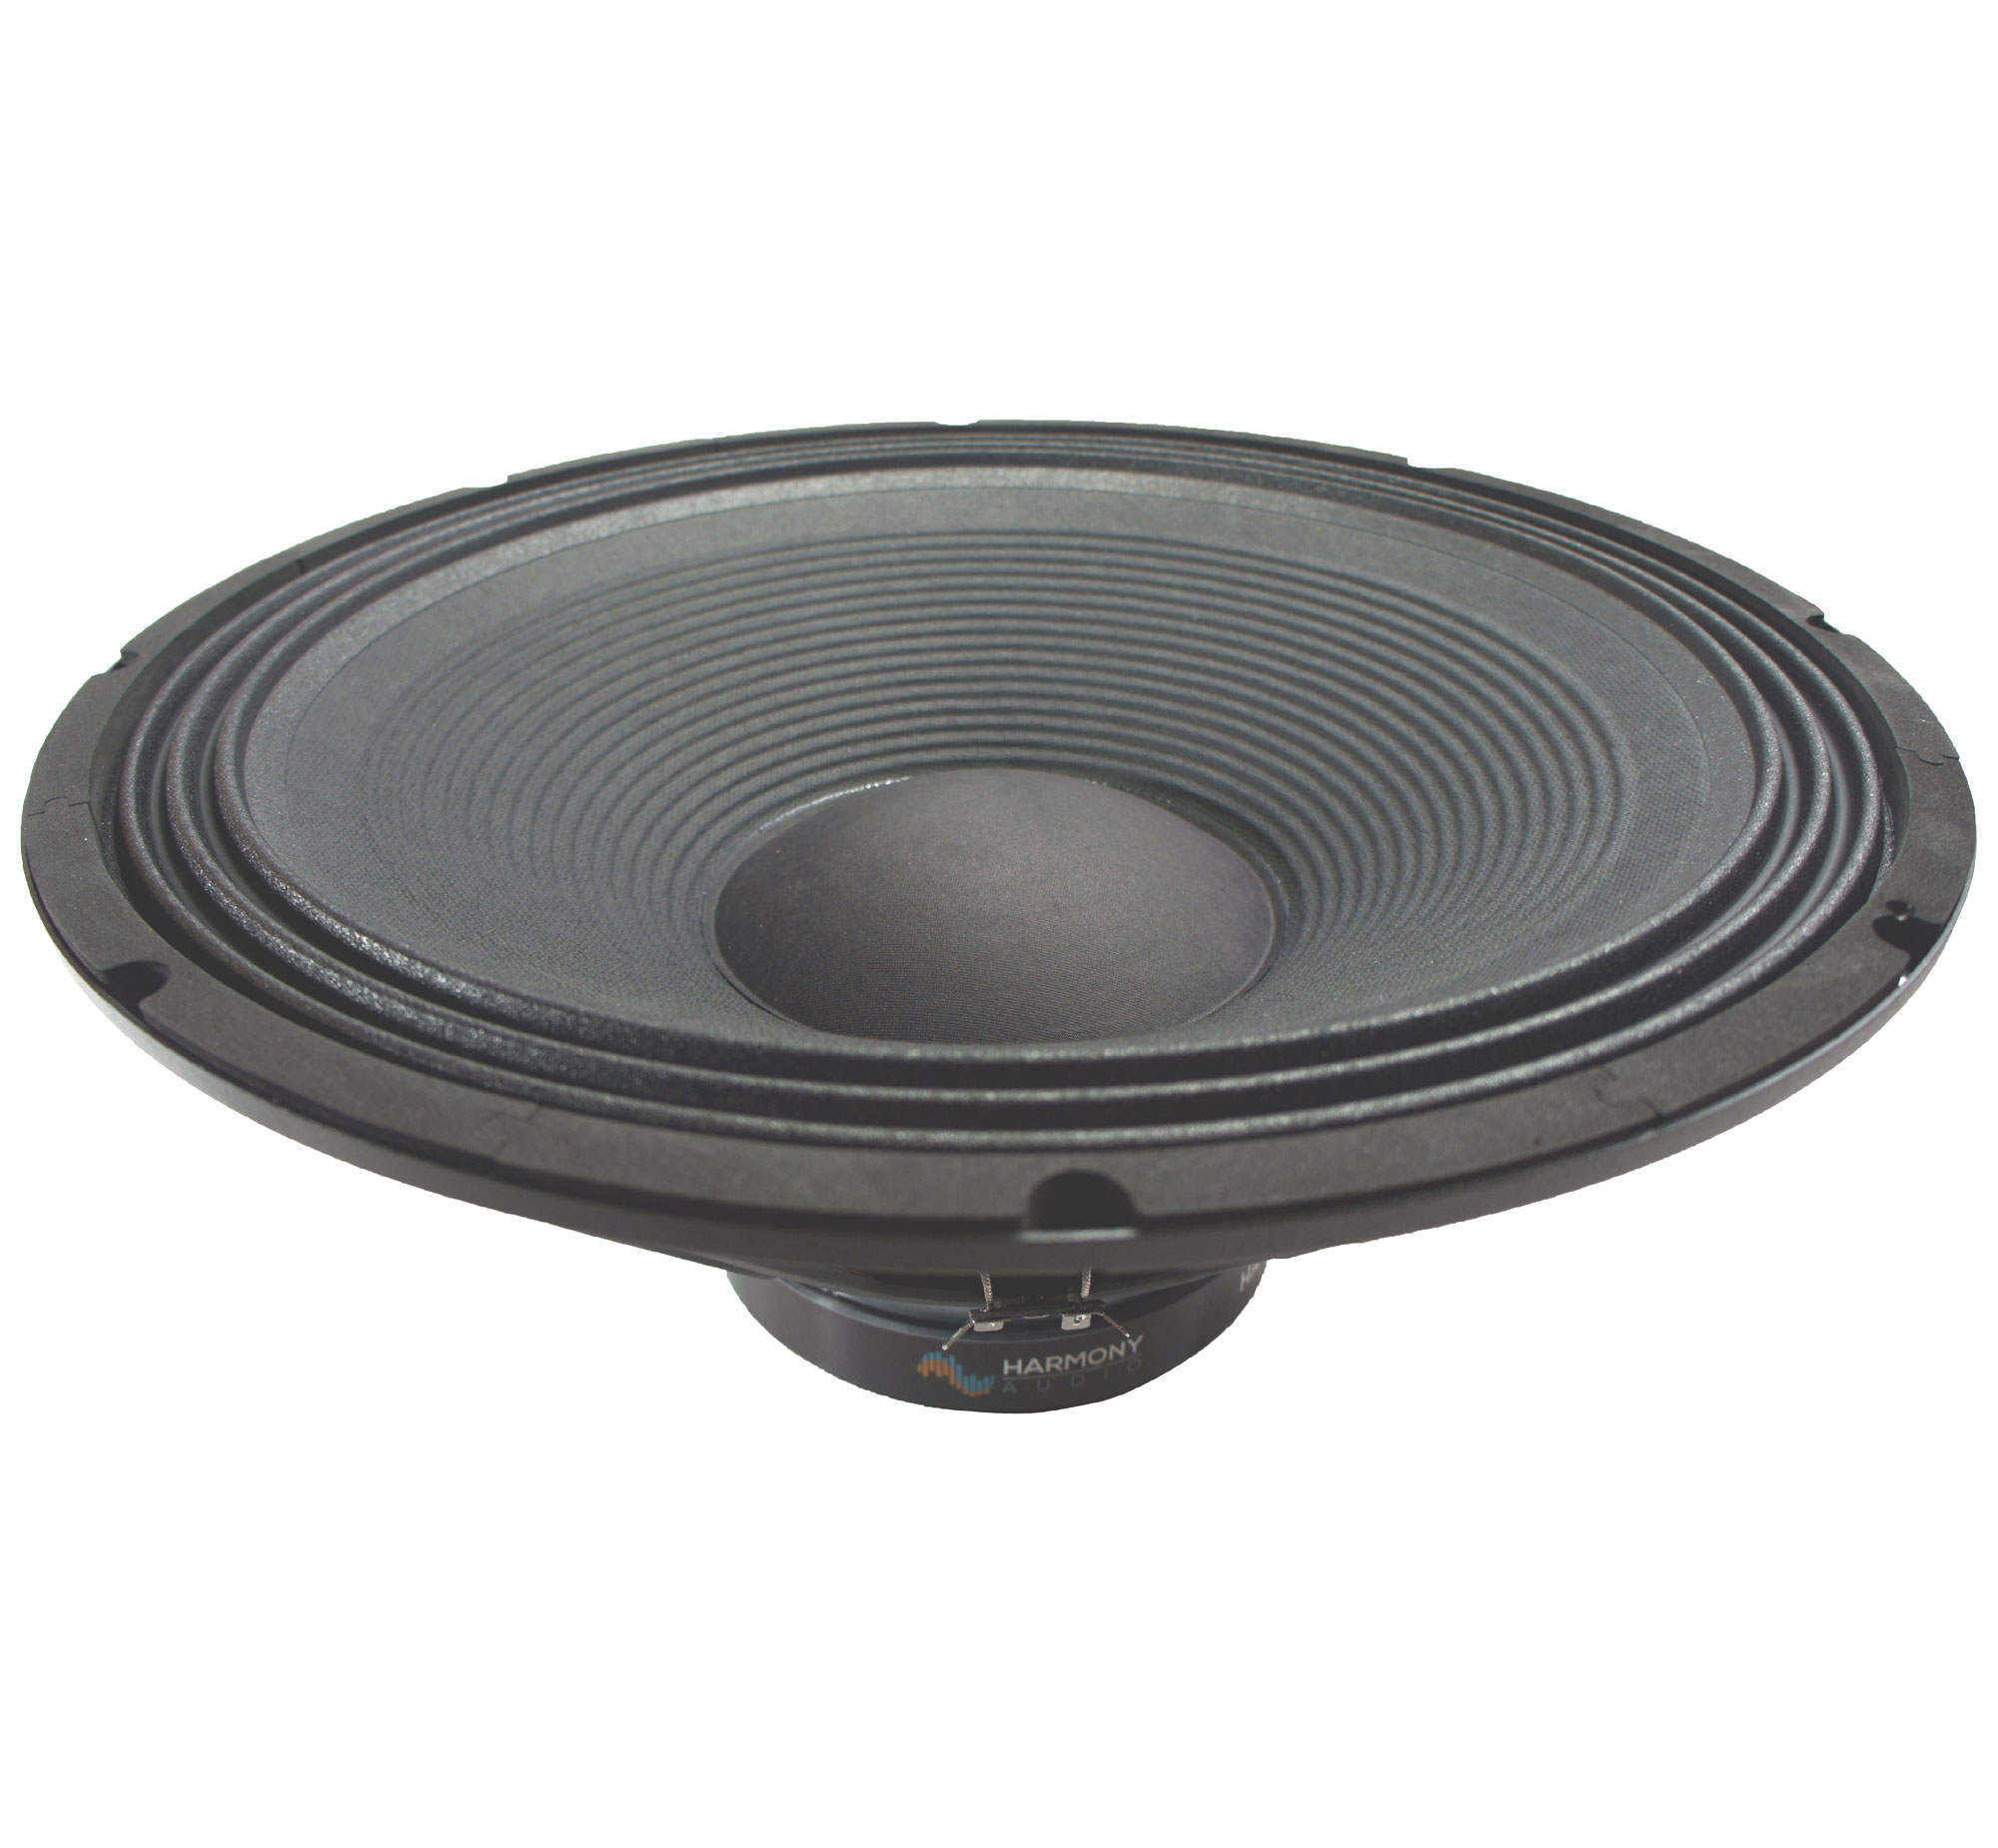 "Harmony HA-P18WS8 Raw Replacement 18"" Pro PA 1200W Subwoofer / Speaker 8 Ohm Woofer - 65oz Magnet"